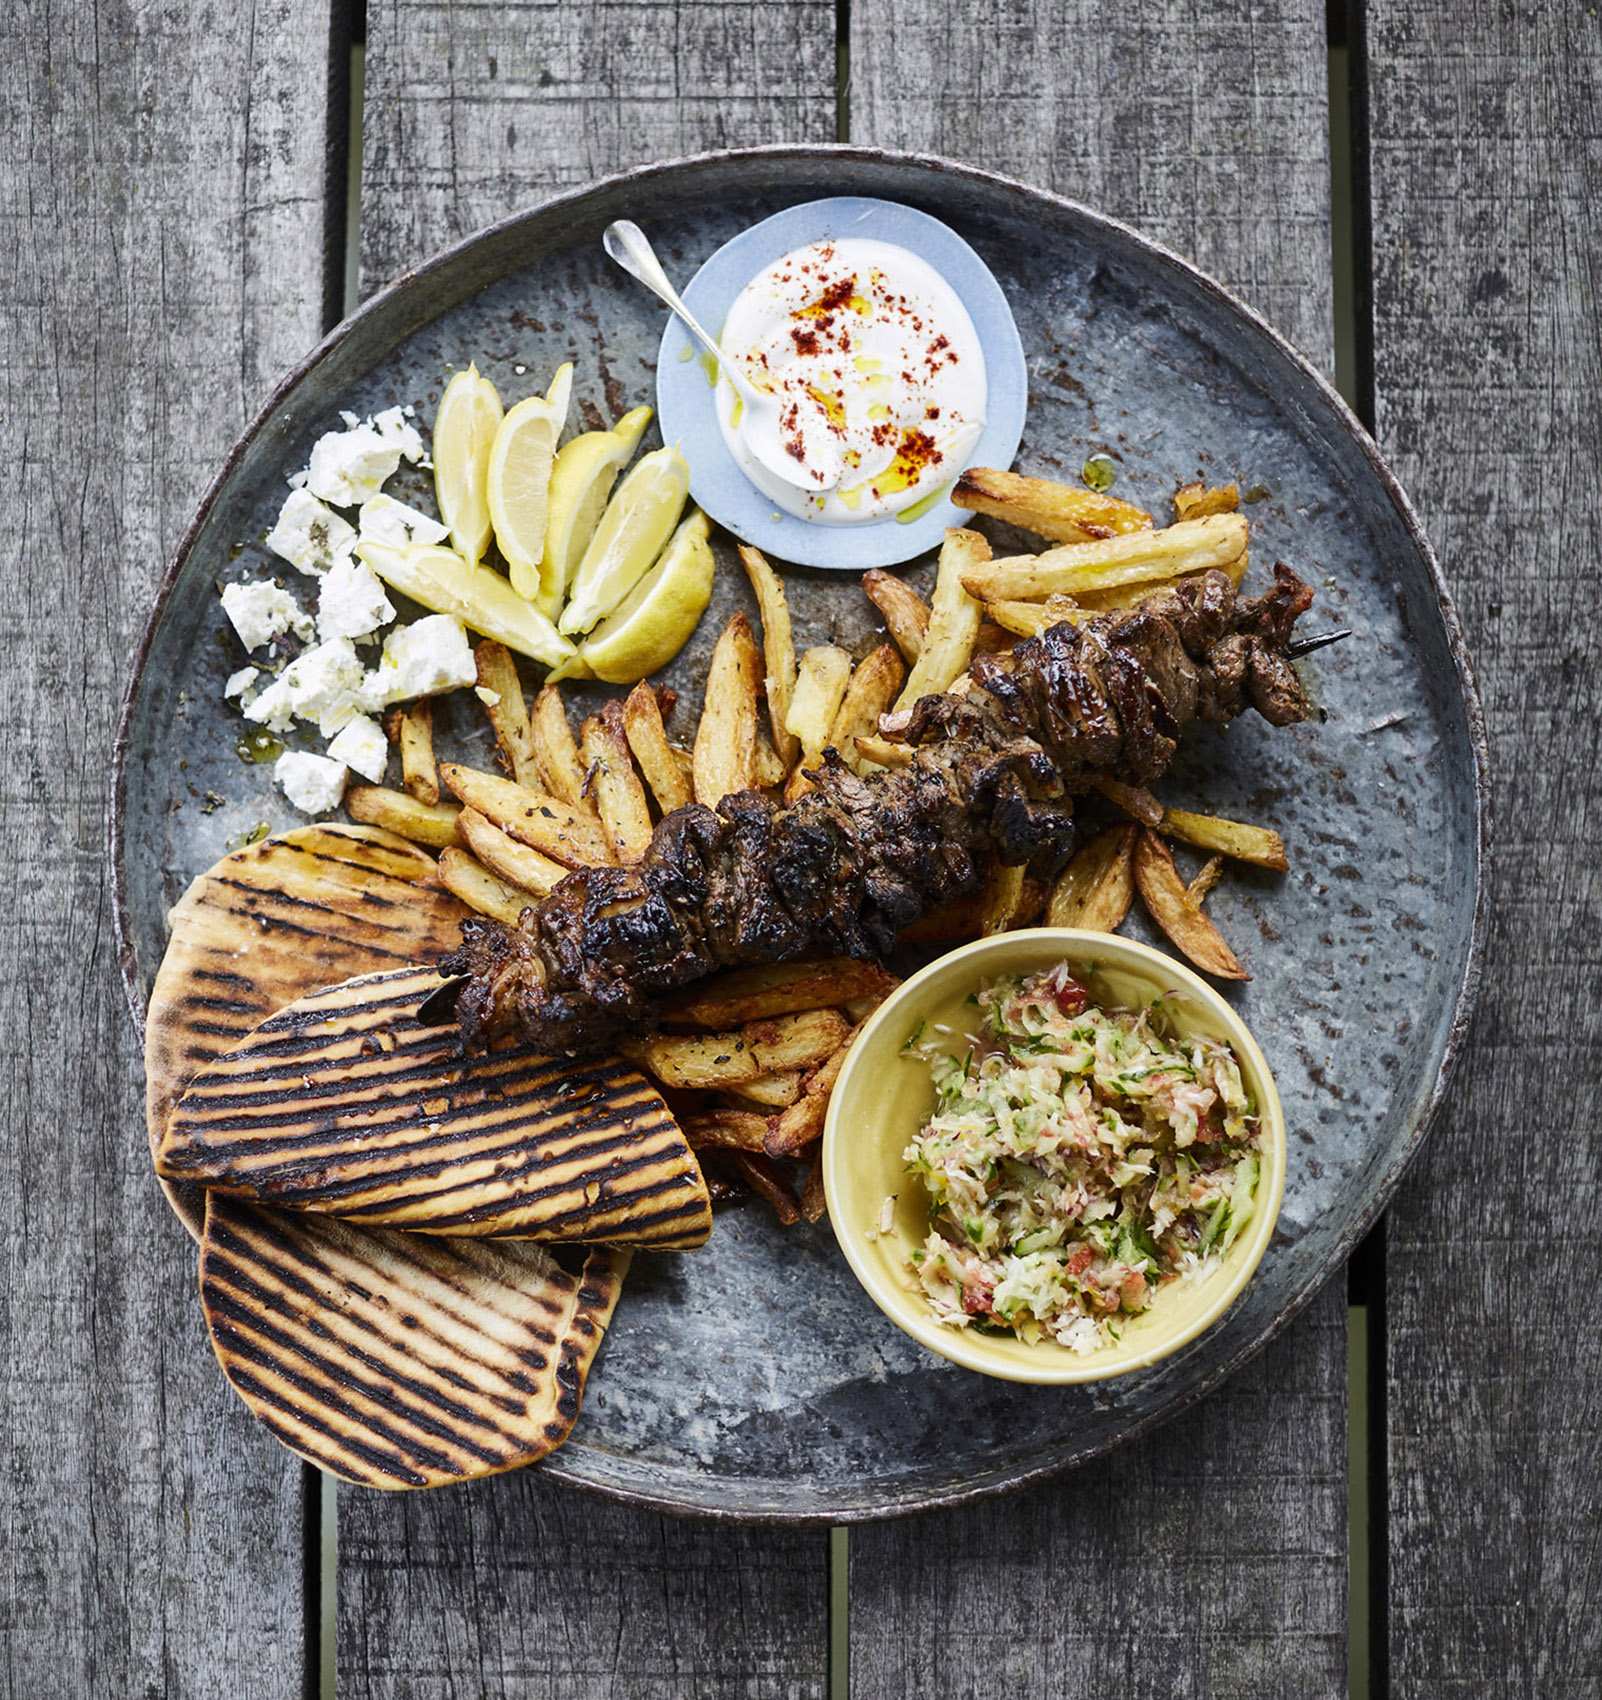 SteveRyan_Photographer_Food_JamieOliver_Kebab_61